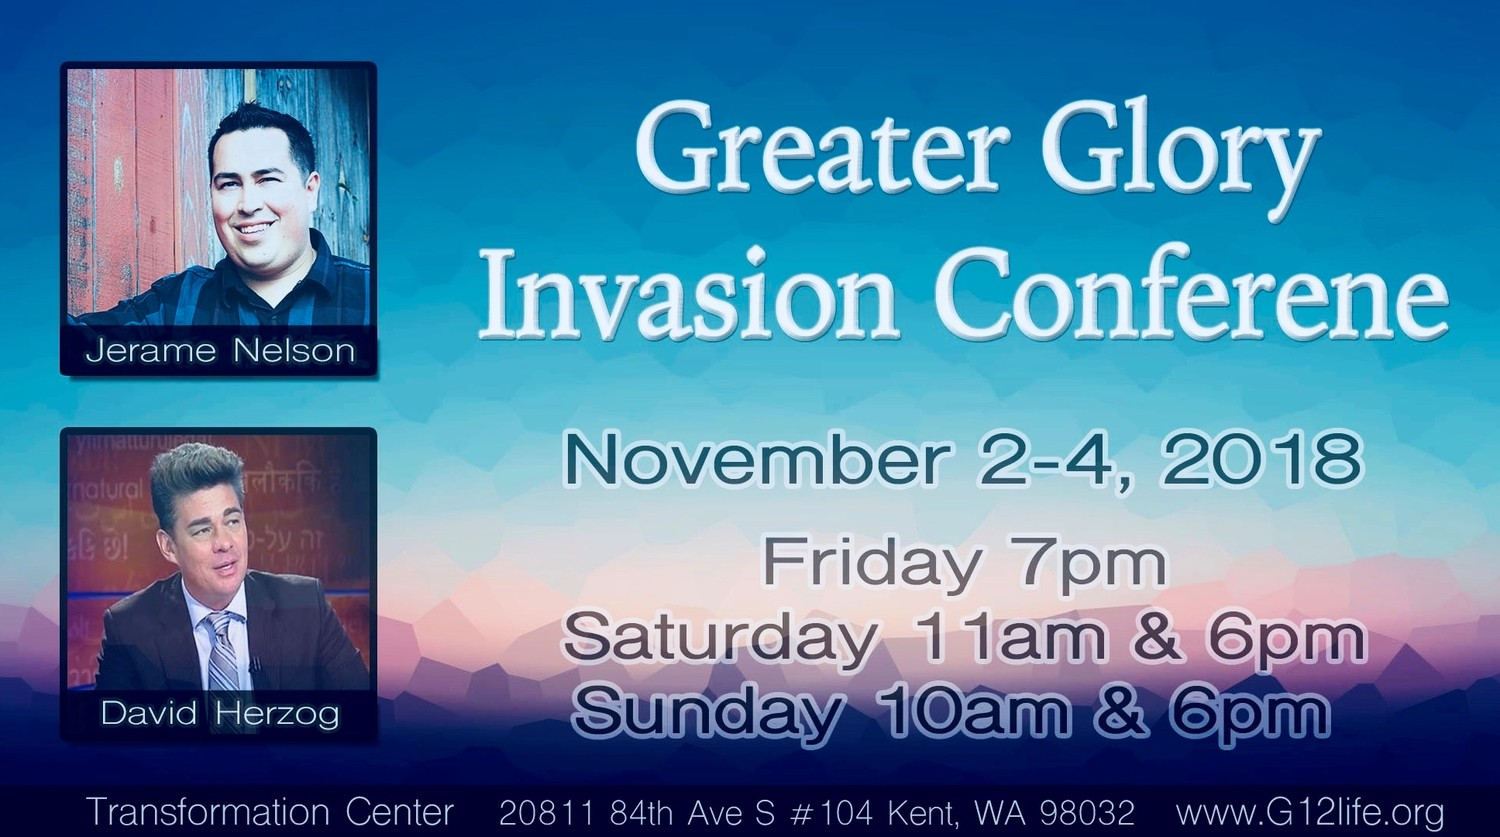 """Greater Glory Invasion Conference"" With Jerame Nelson and David Herzog (November 2-4 2018)"